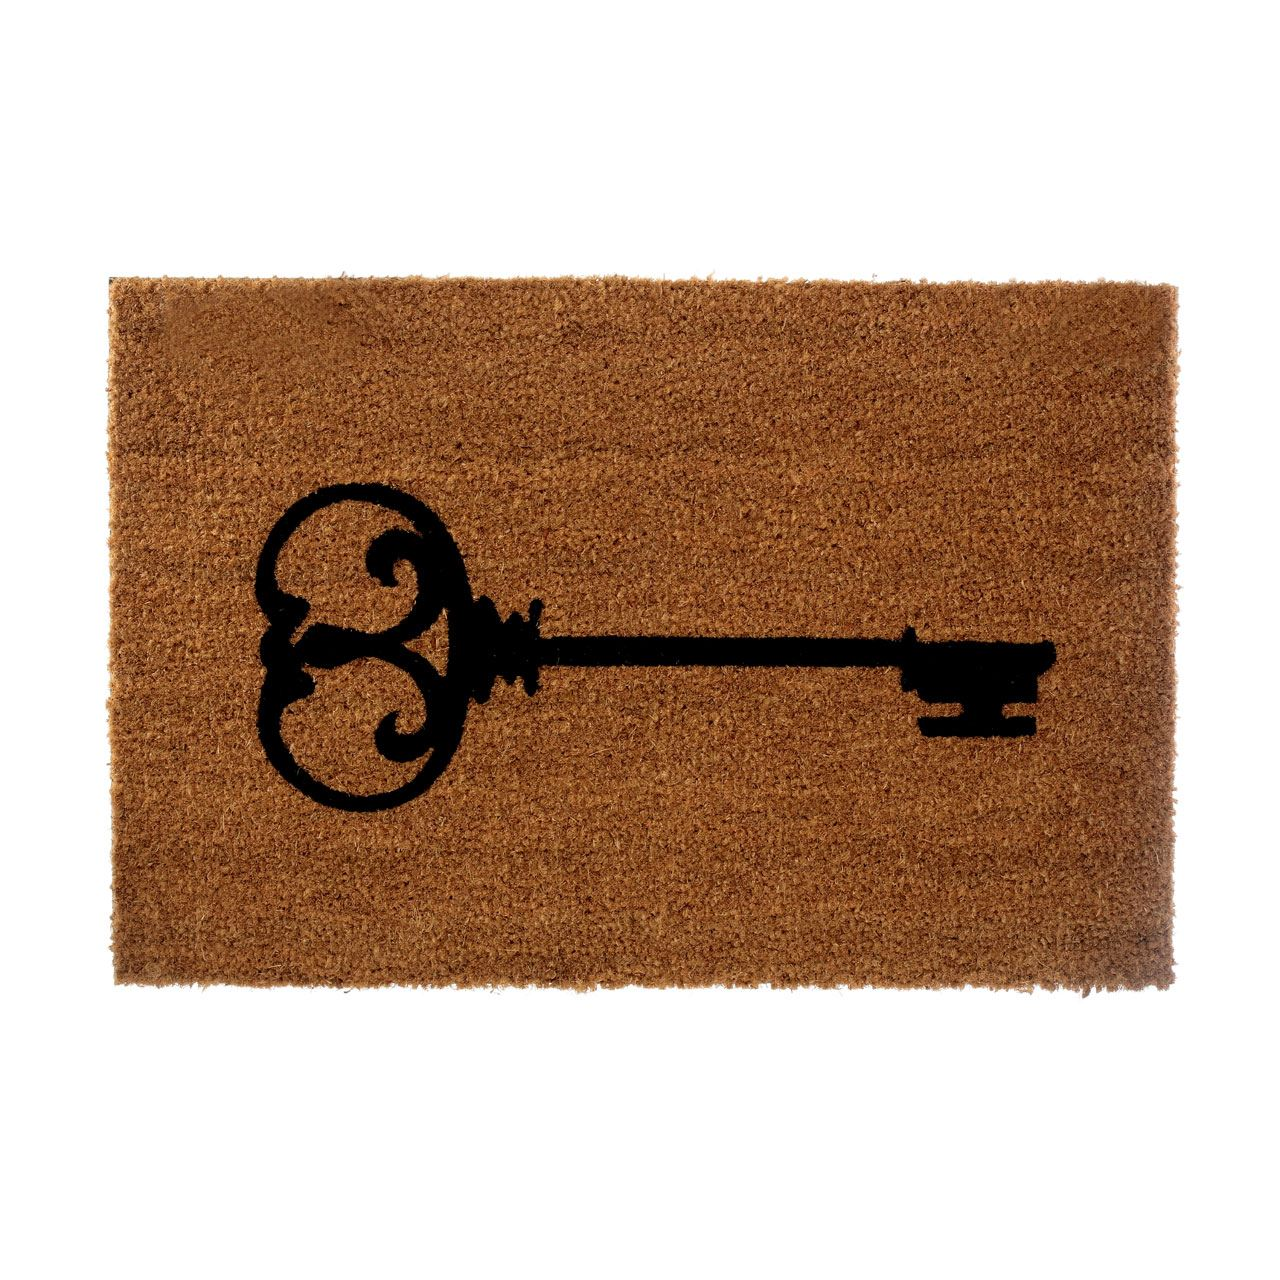 Key Doormat,Coir/Pvc Backed,Natural/Black